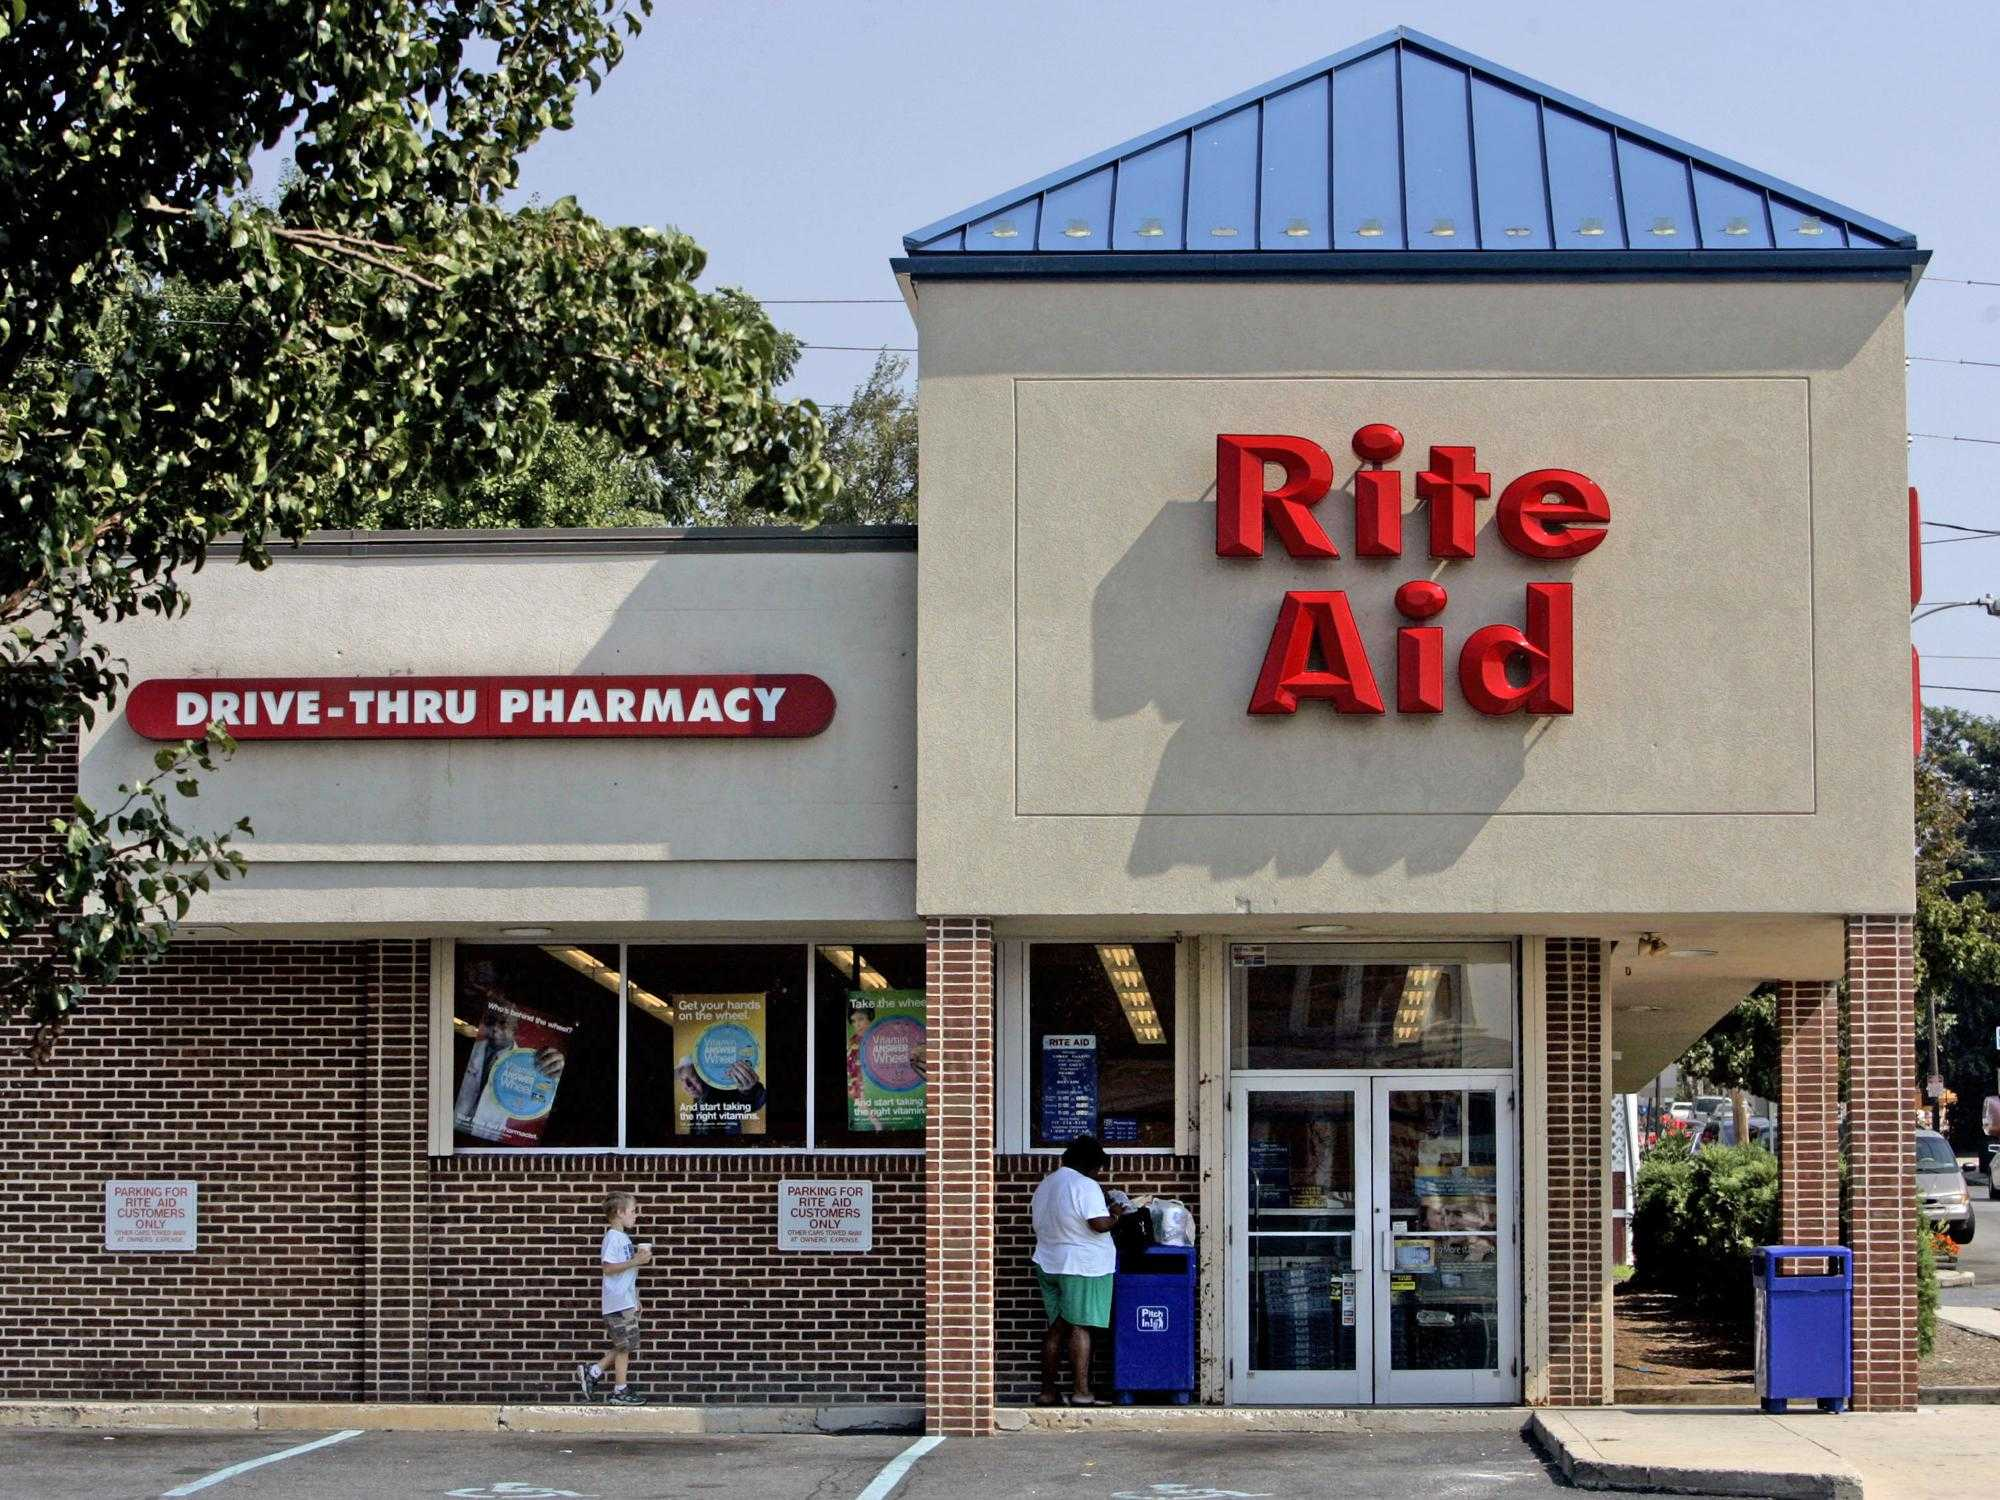 Albertsons to acquire Rite Aid